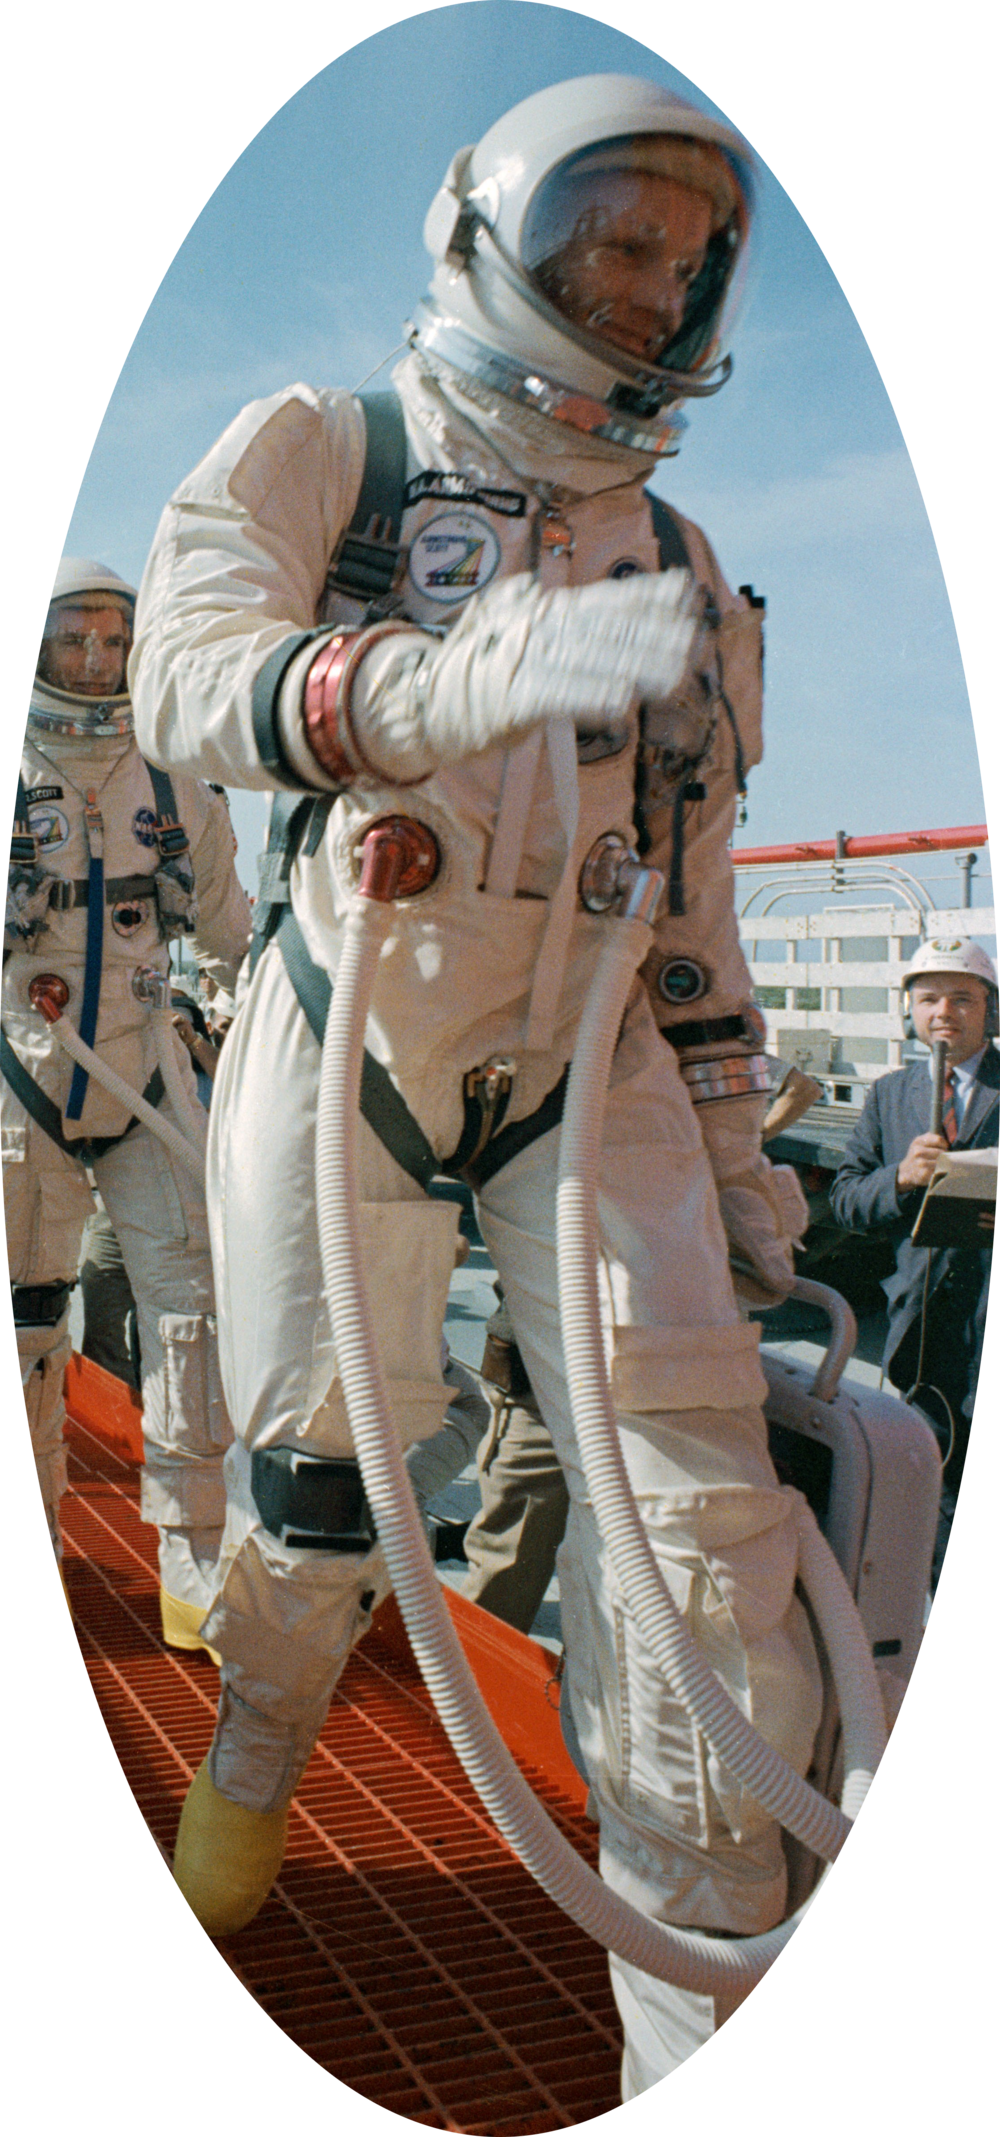 Jimmie Mattern's All-Proof on the right wrist of Neil Armstrong. You can see the strap just above the red cuff.